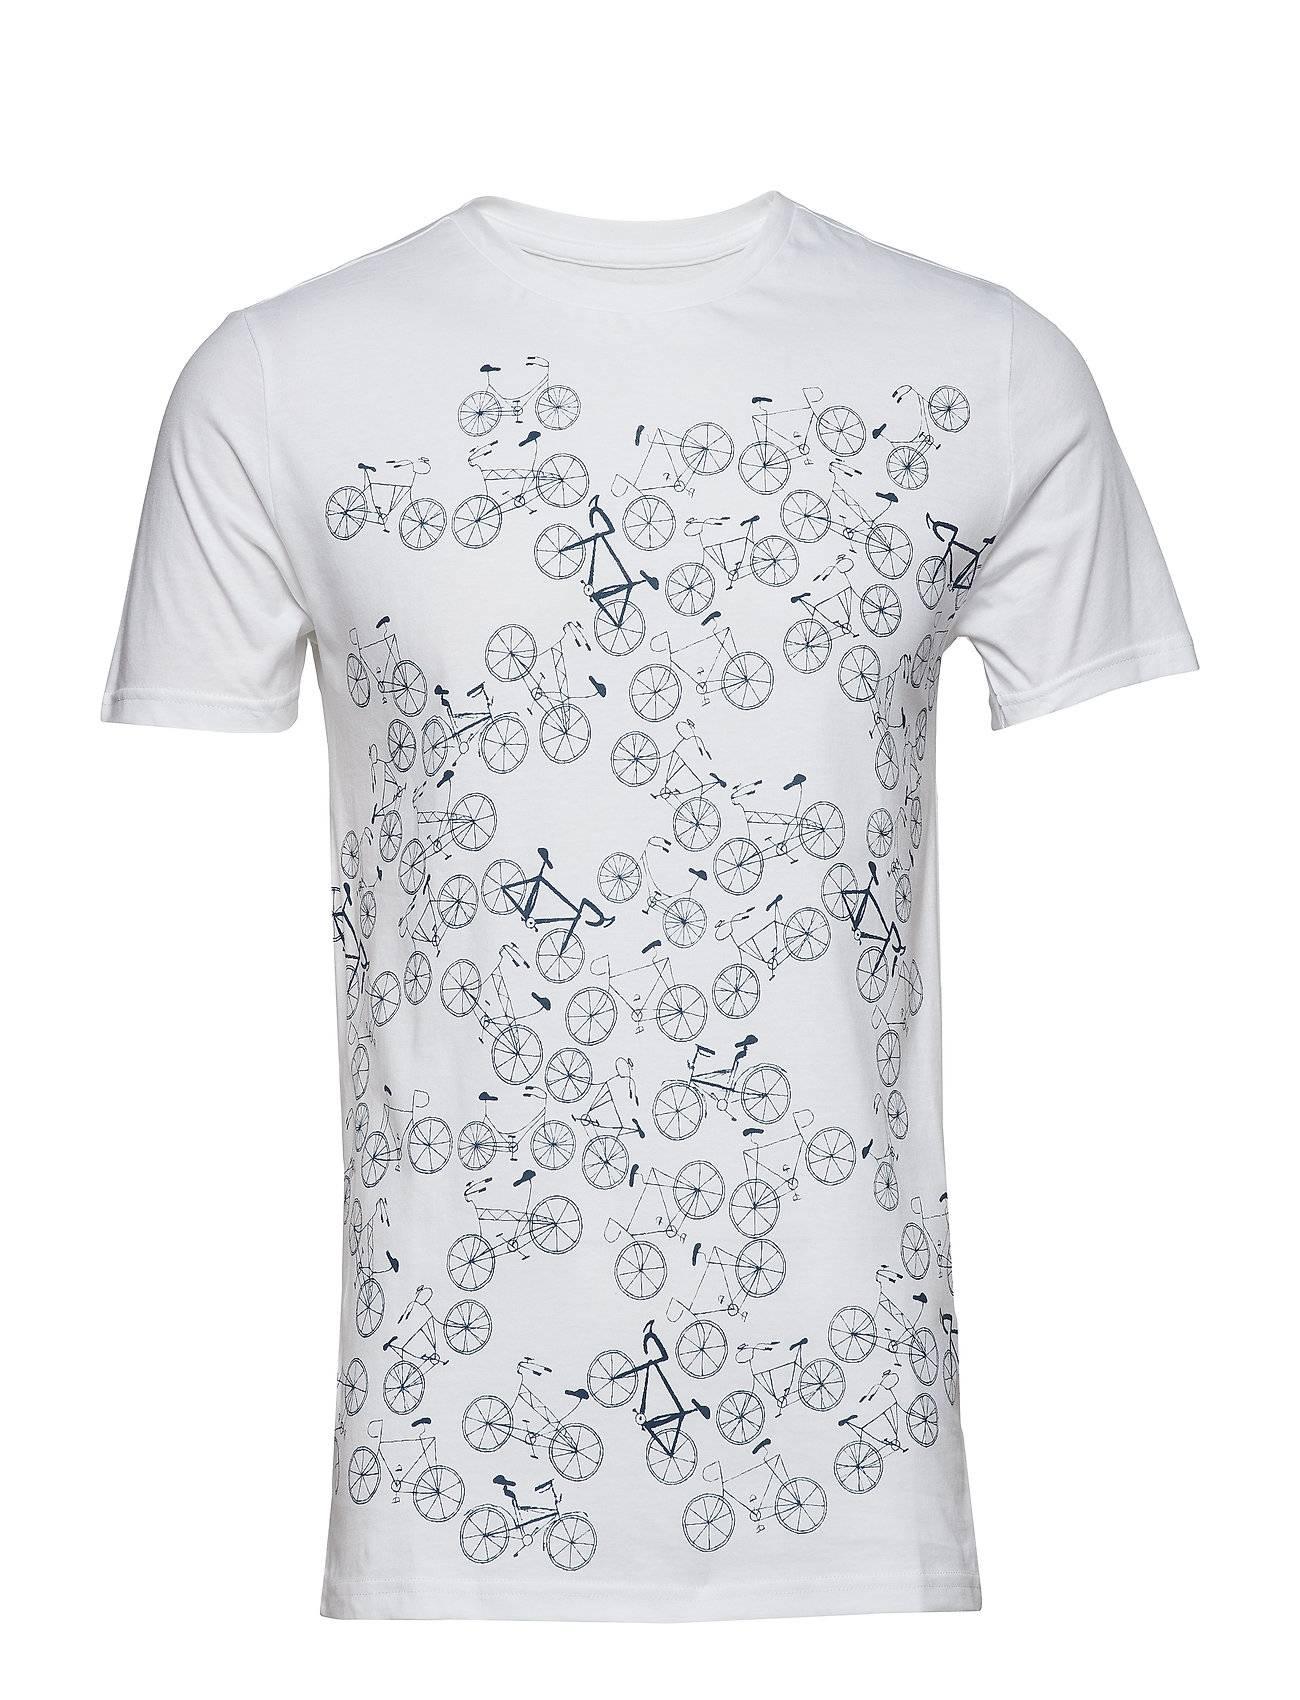 Knowledge Cotton Apparel T-Shirt With Bike Front Print - Got